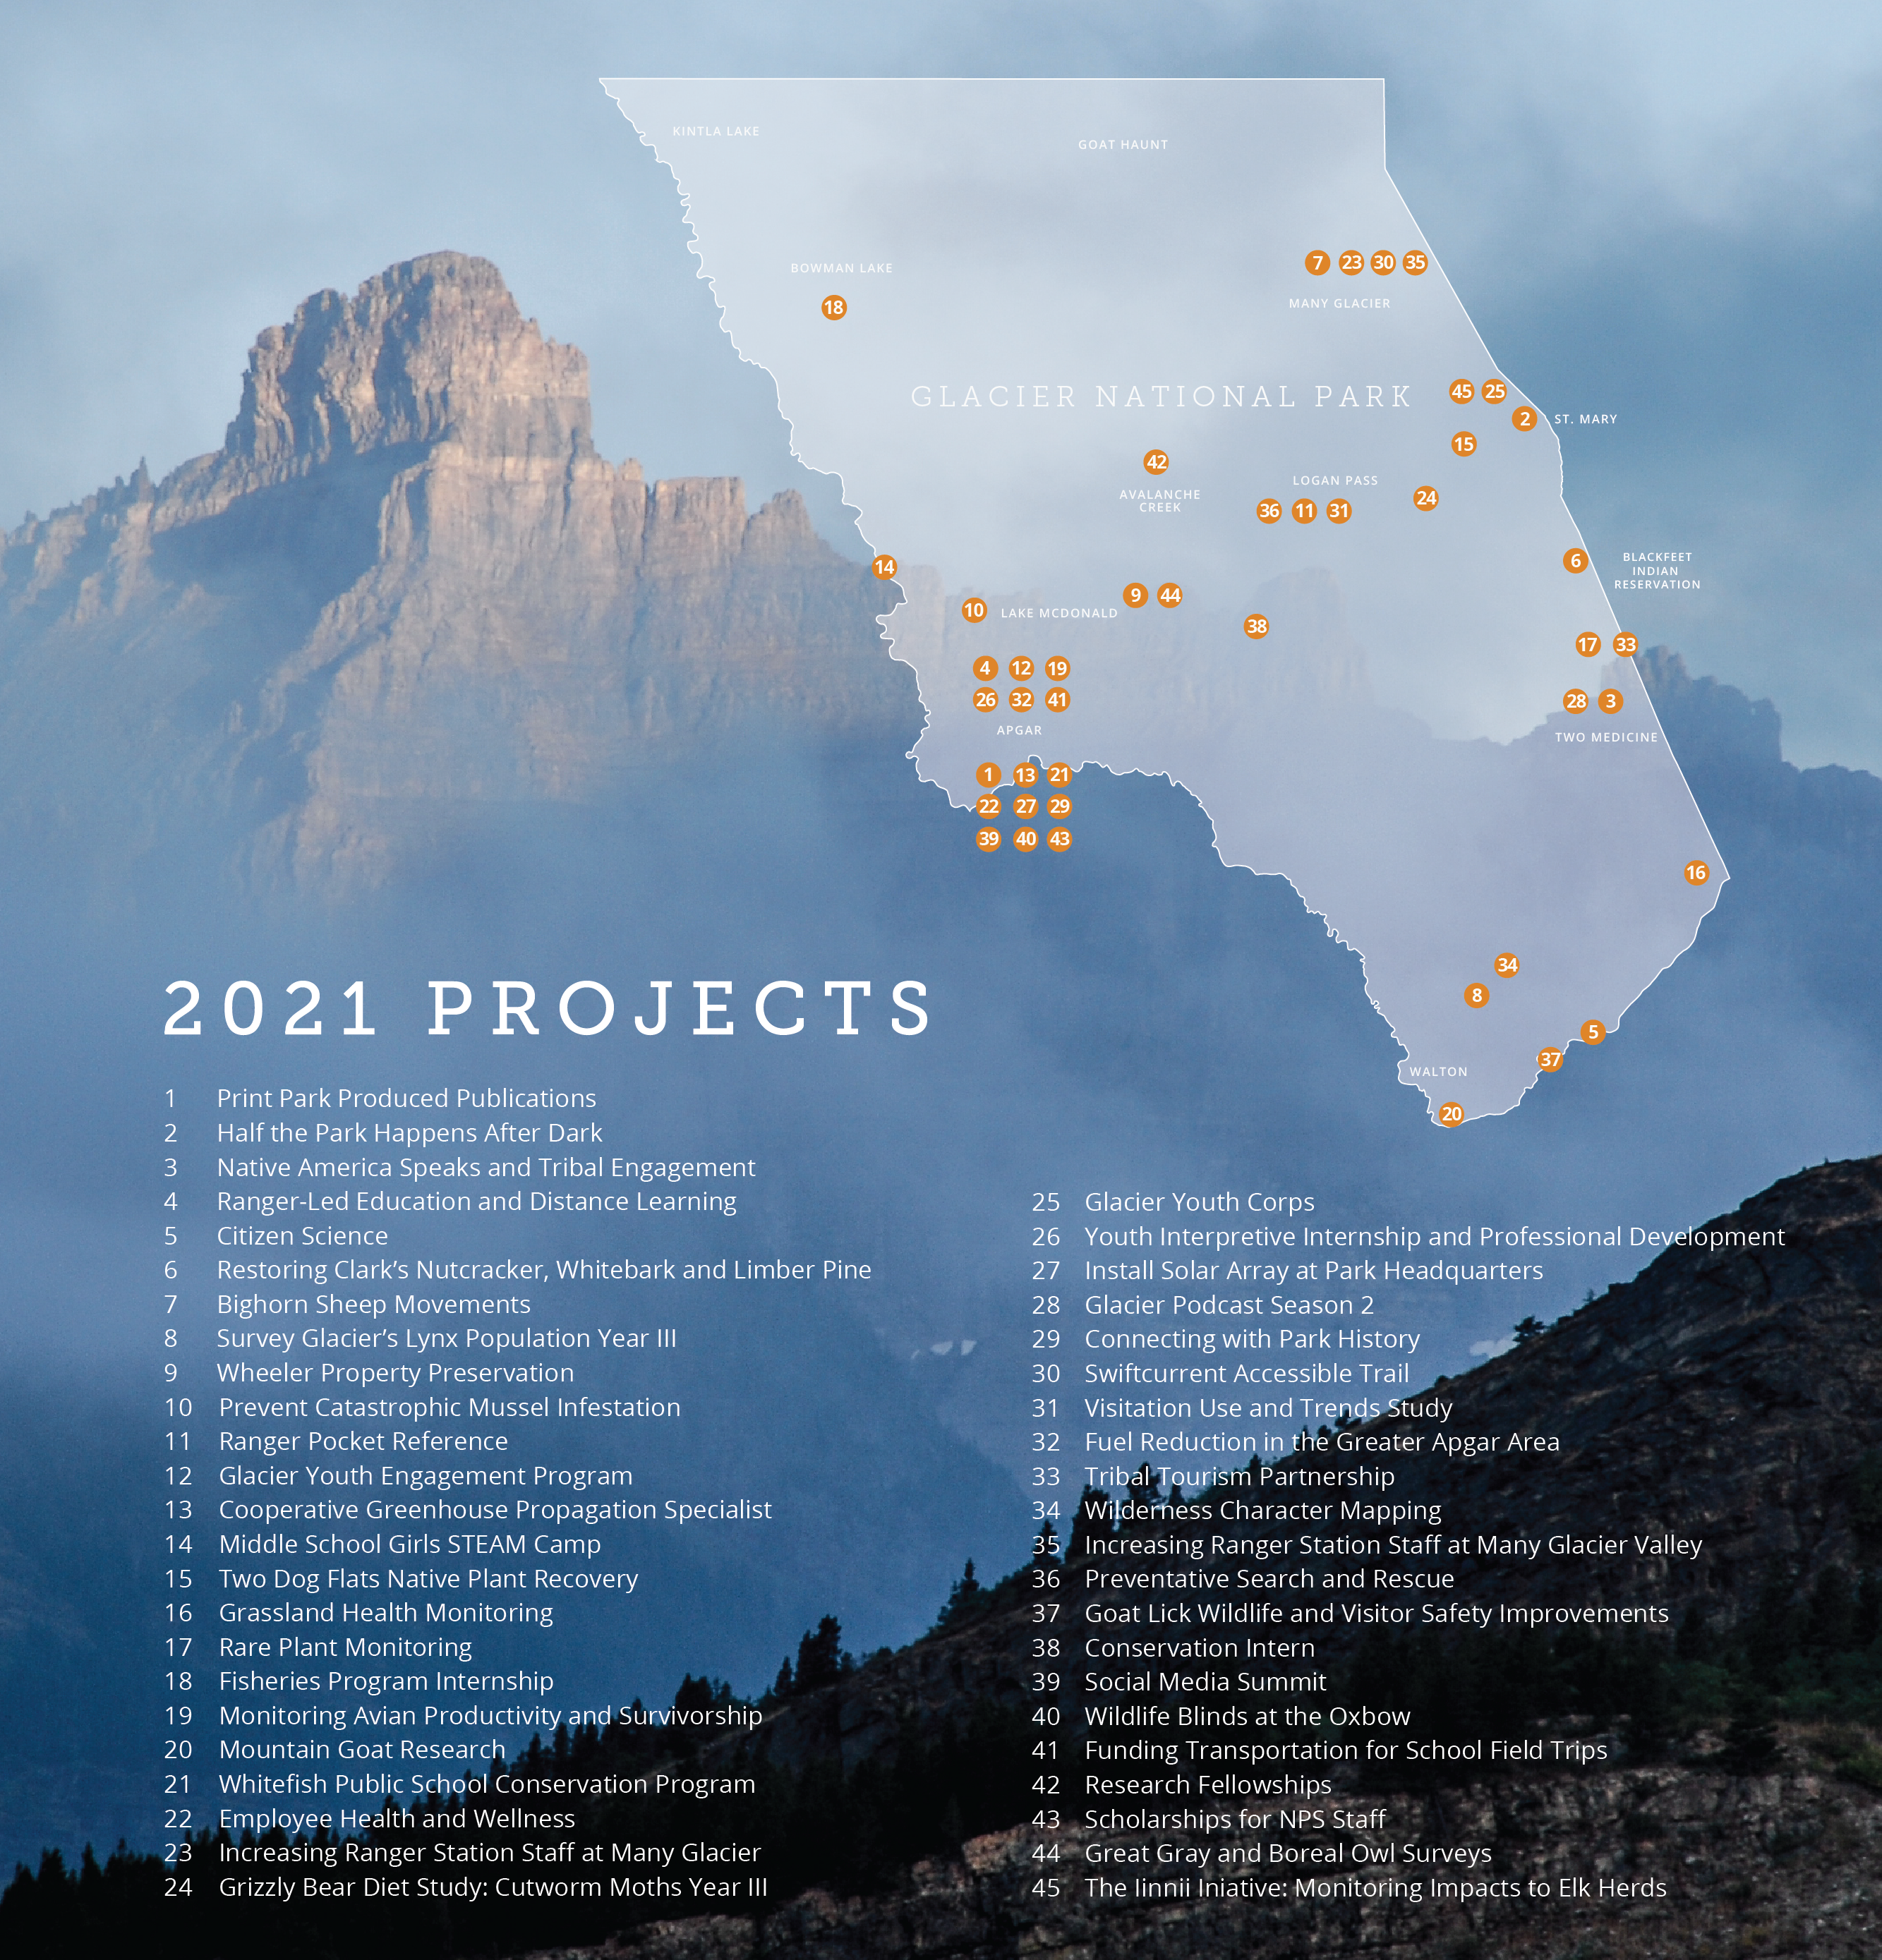 Glacier National Park map with projects for 2021